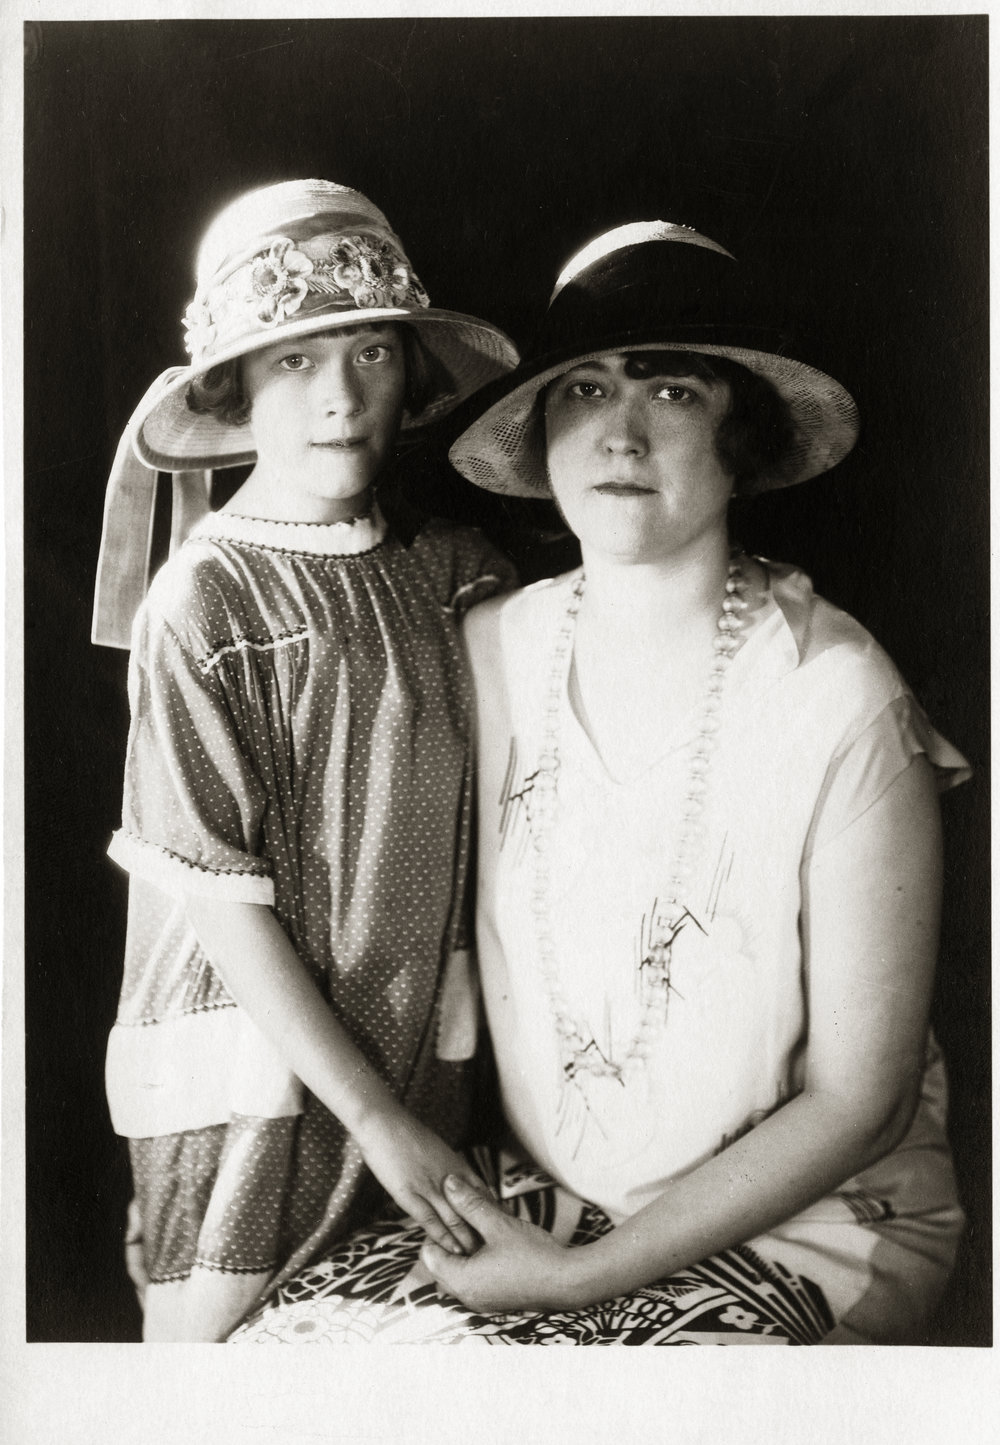 Geraldine R. Snedden and daughter, Geraldine